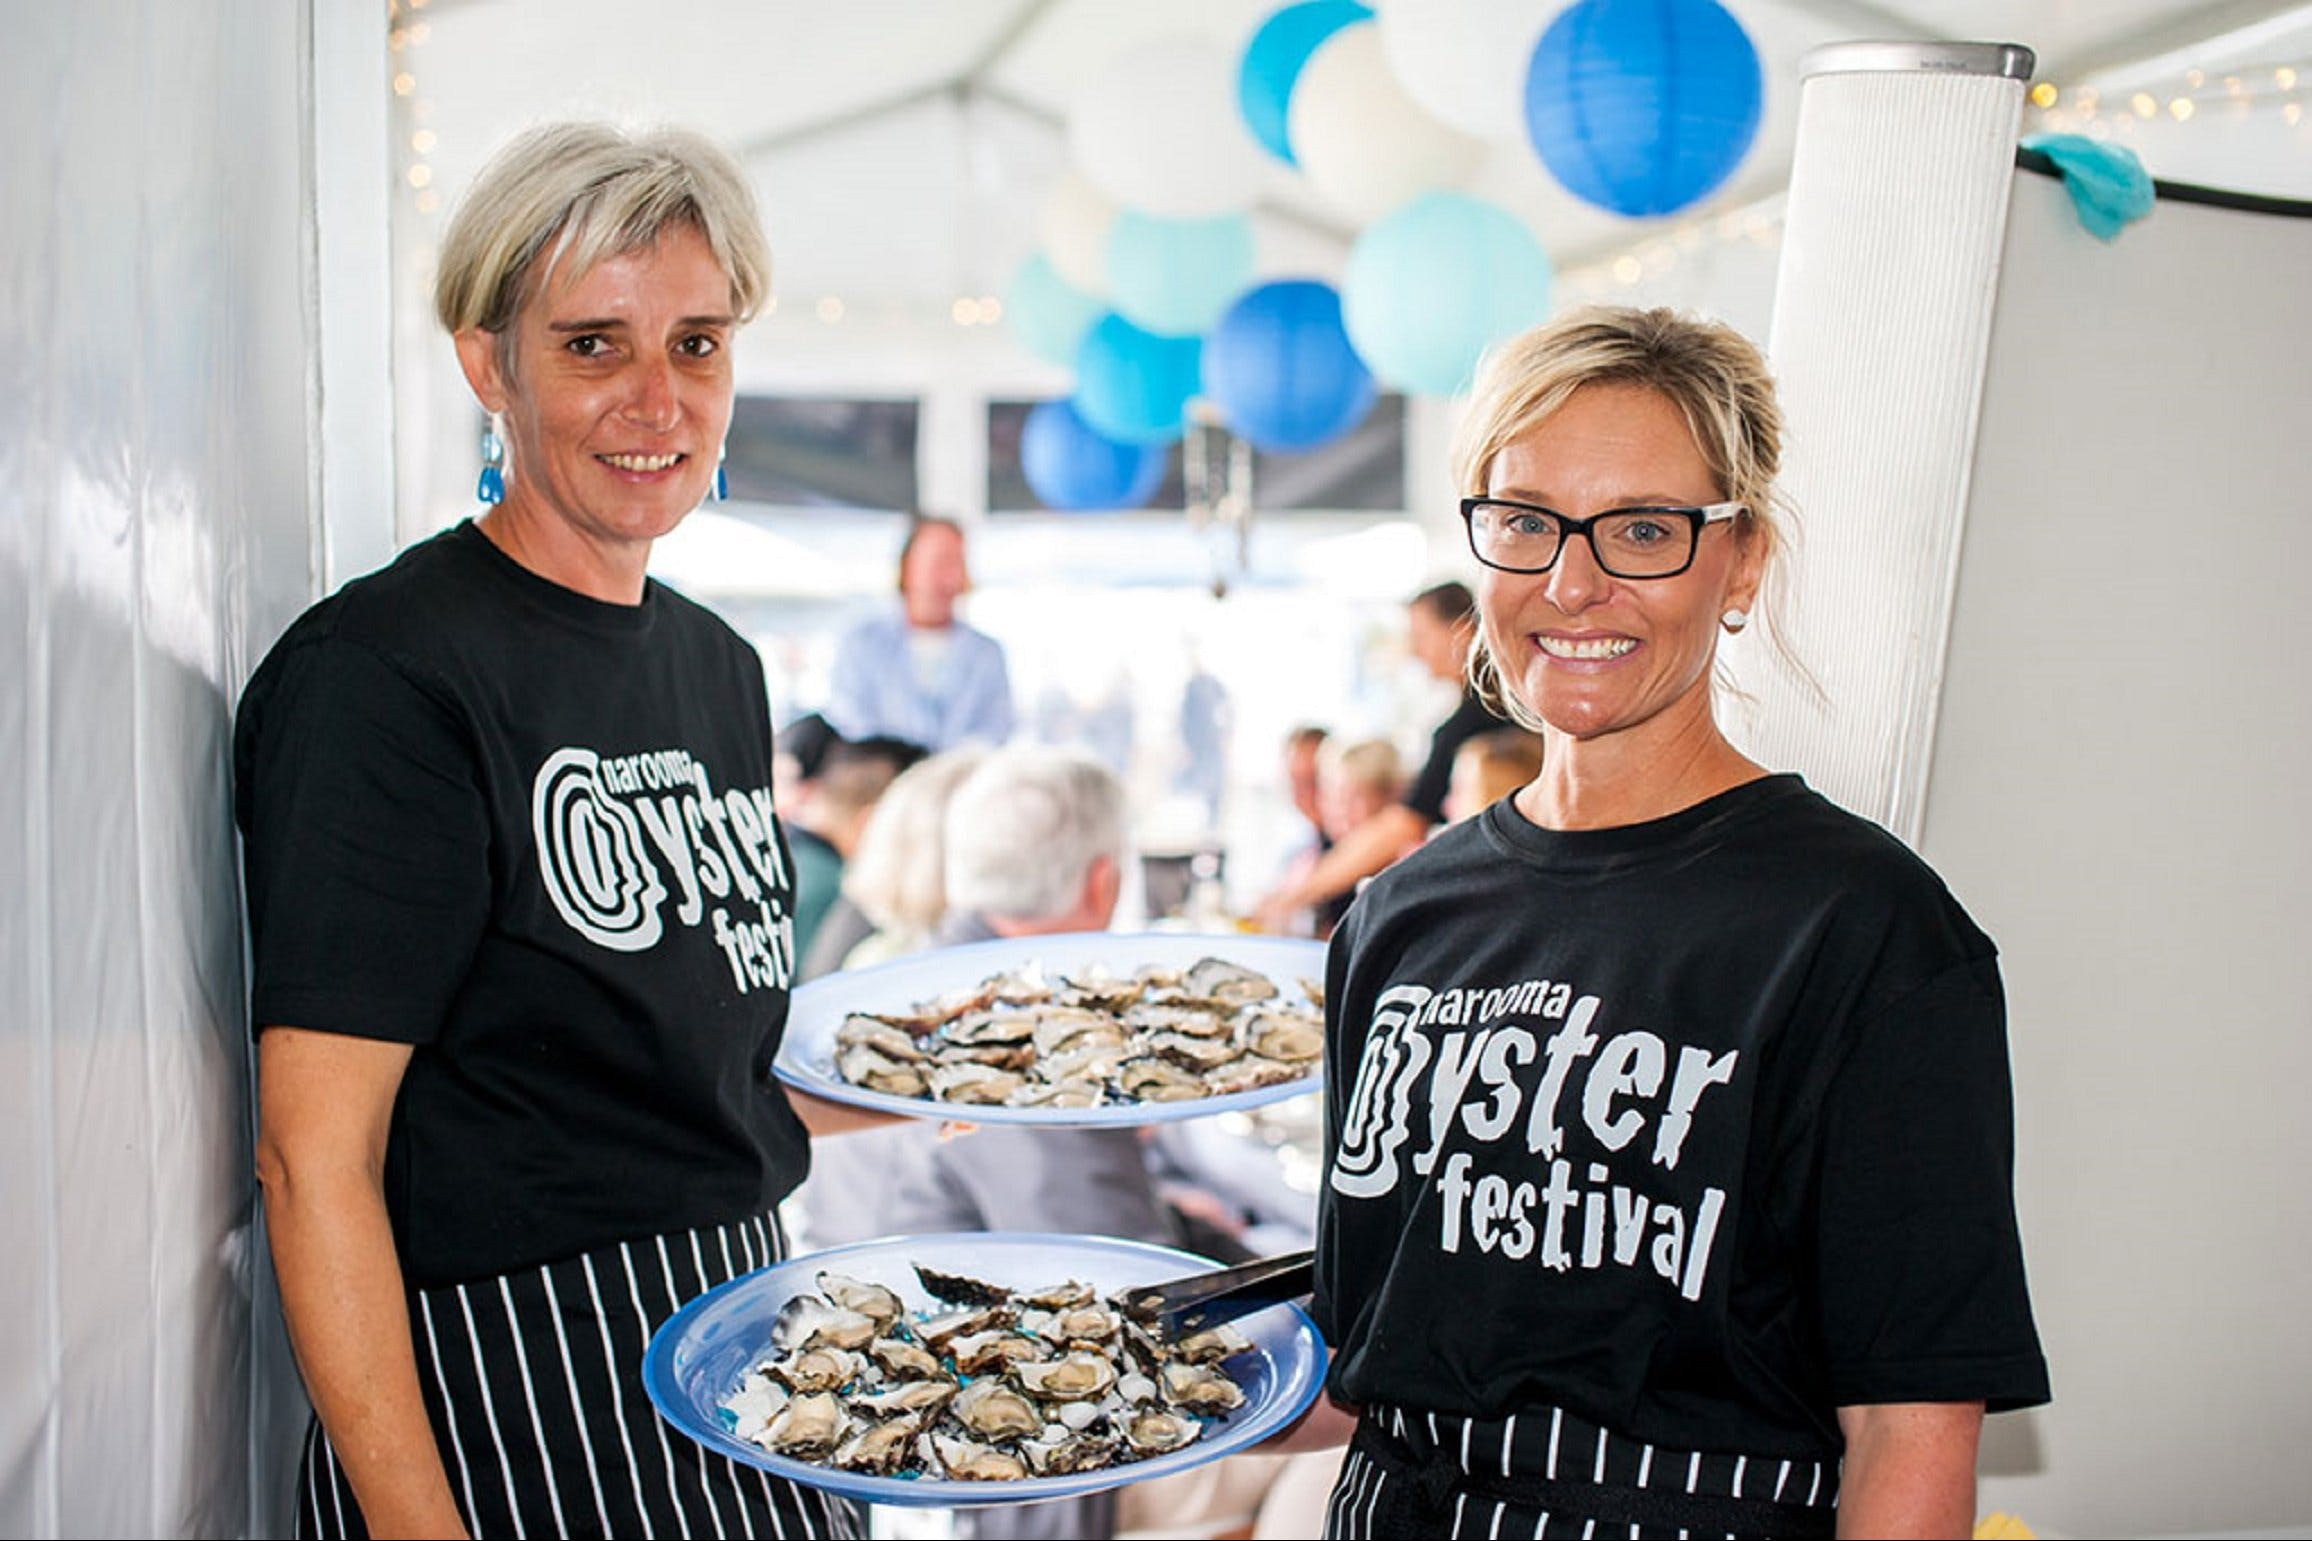 Narooma Oyster Festival - Tourism Cairns